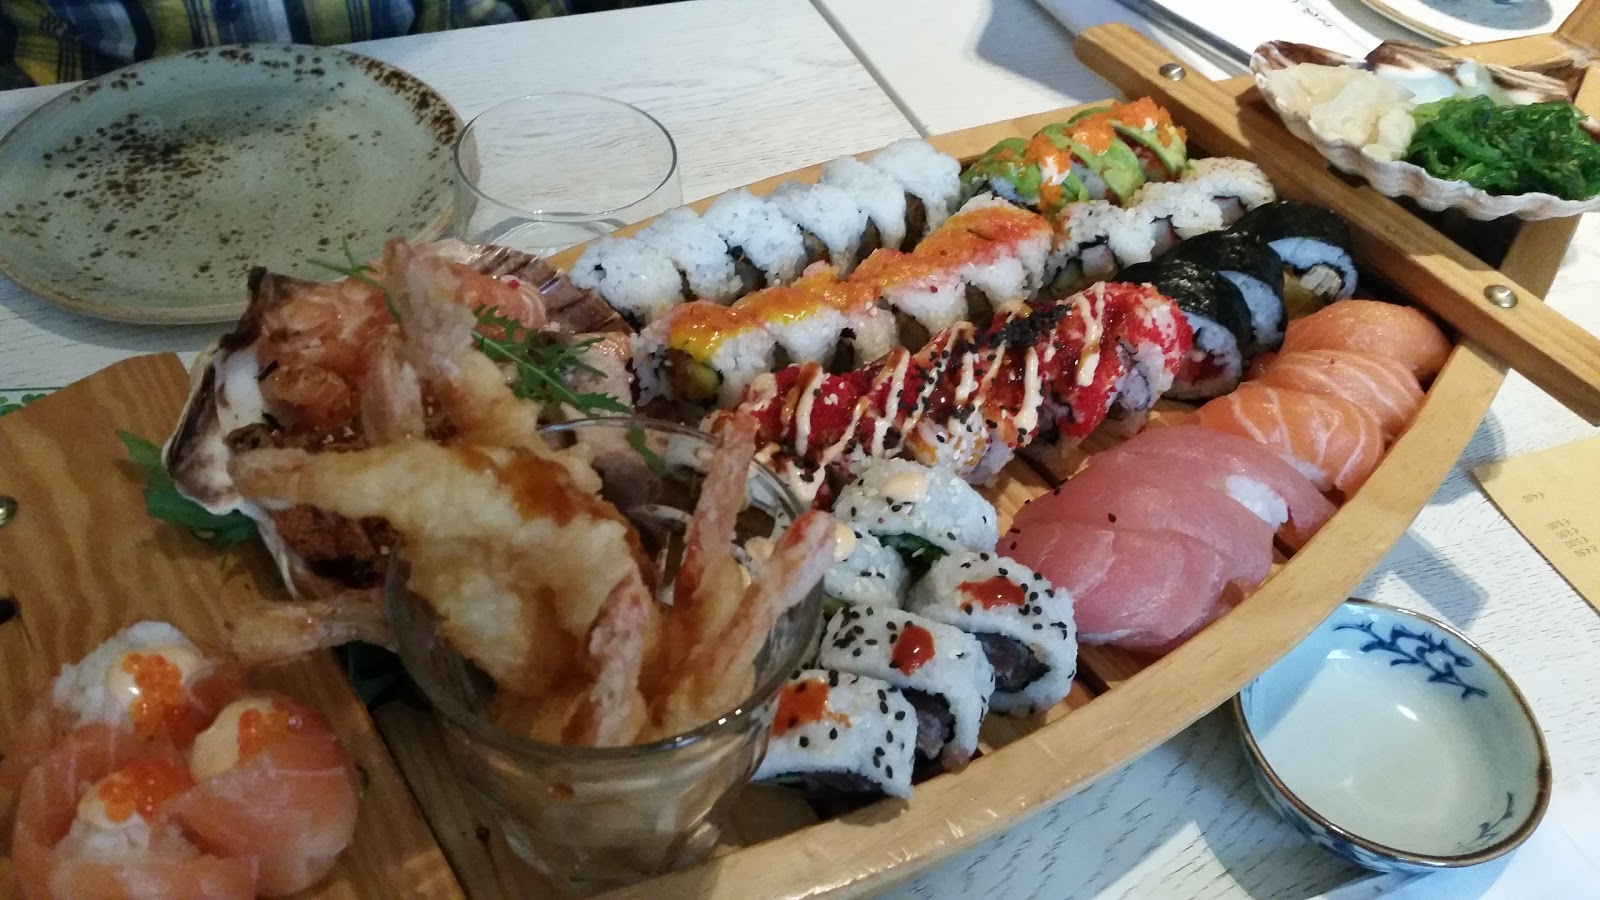 The Sushi Boat